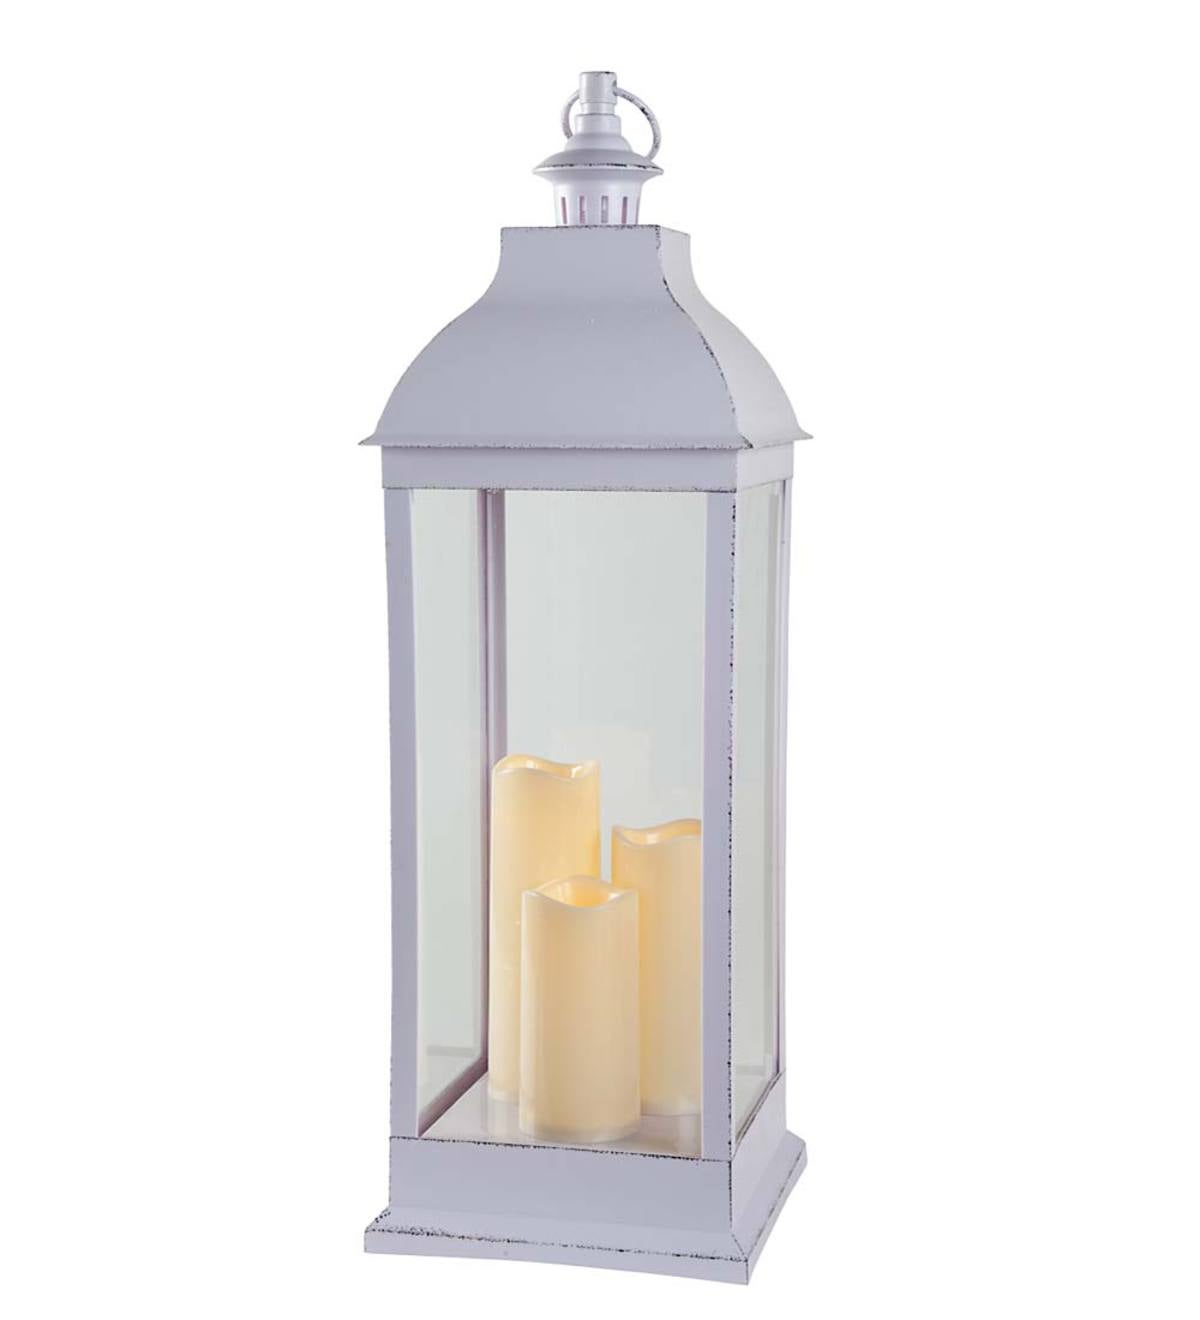 Antique-Style Lantern with Electric Candles - White